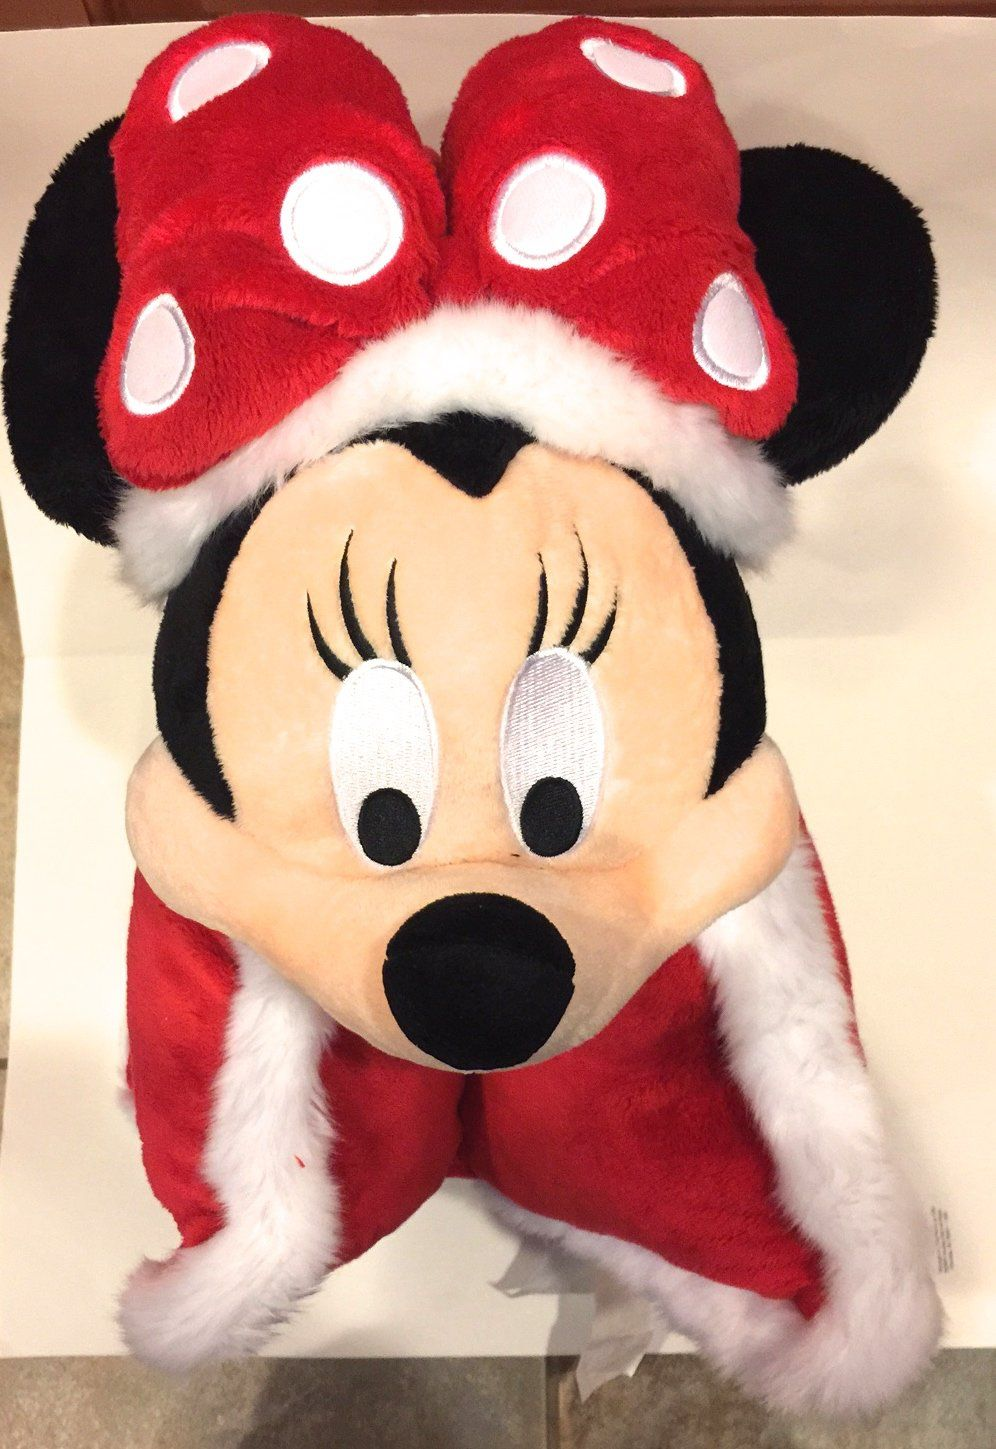 Disney Parks Santa Minnie Mouse Pillow Pal Pet Plush Doll New Disney Pillow Pets Disney Pillows Plush Dolls